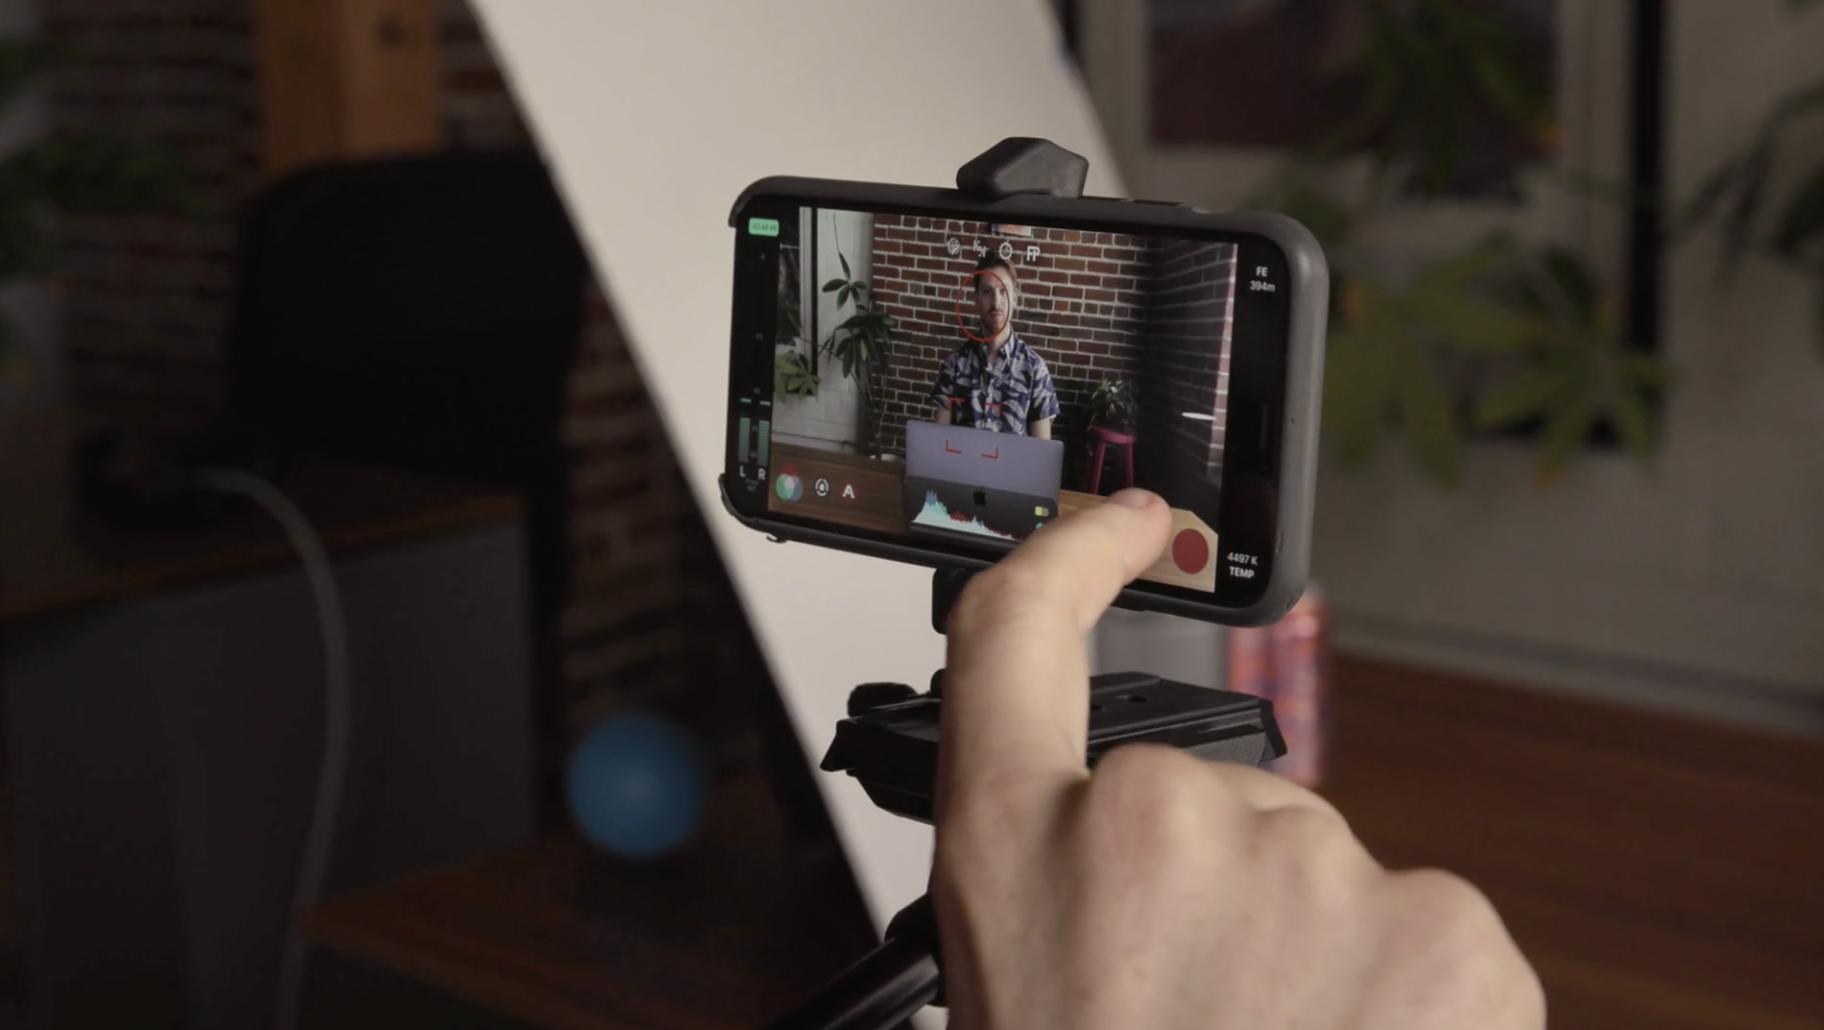 6 Helpful Apps for Shooting and Editing Video on Your Phone